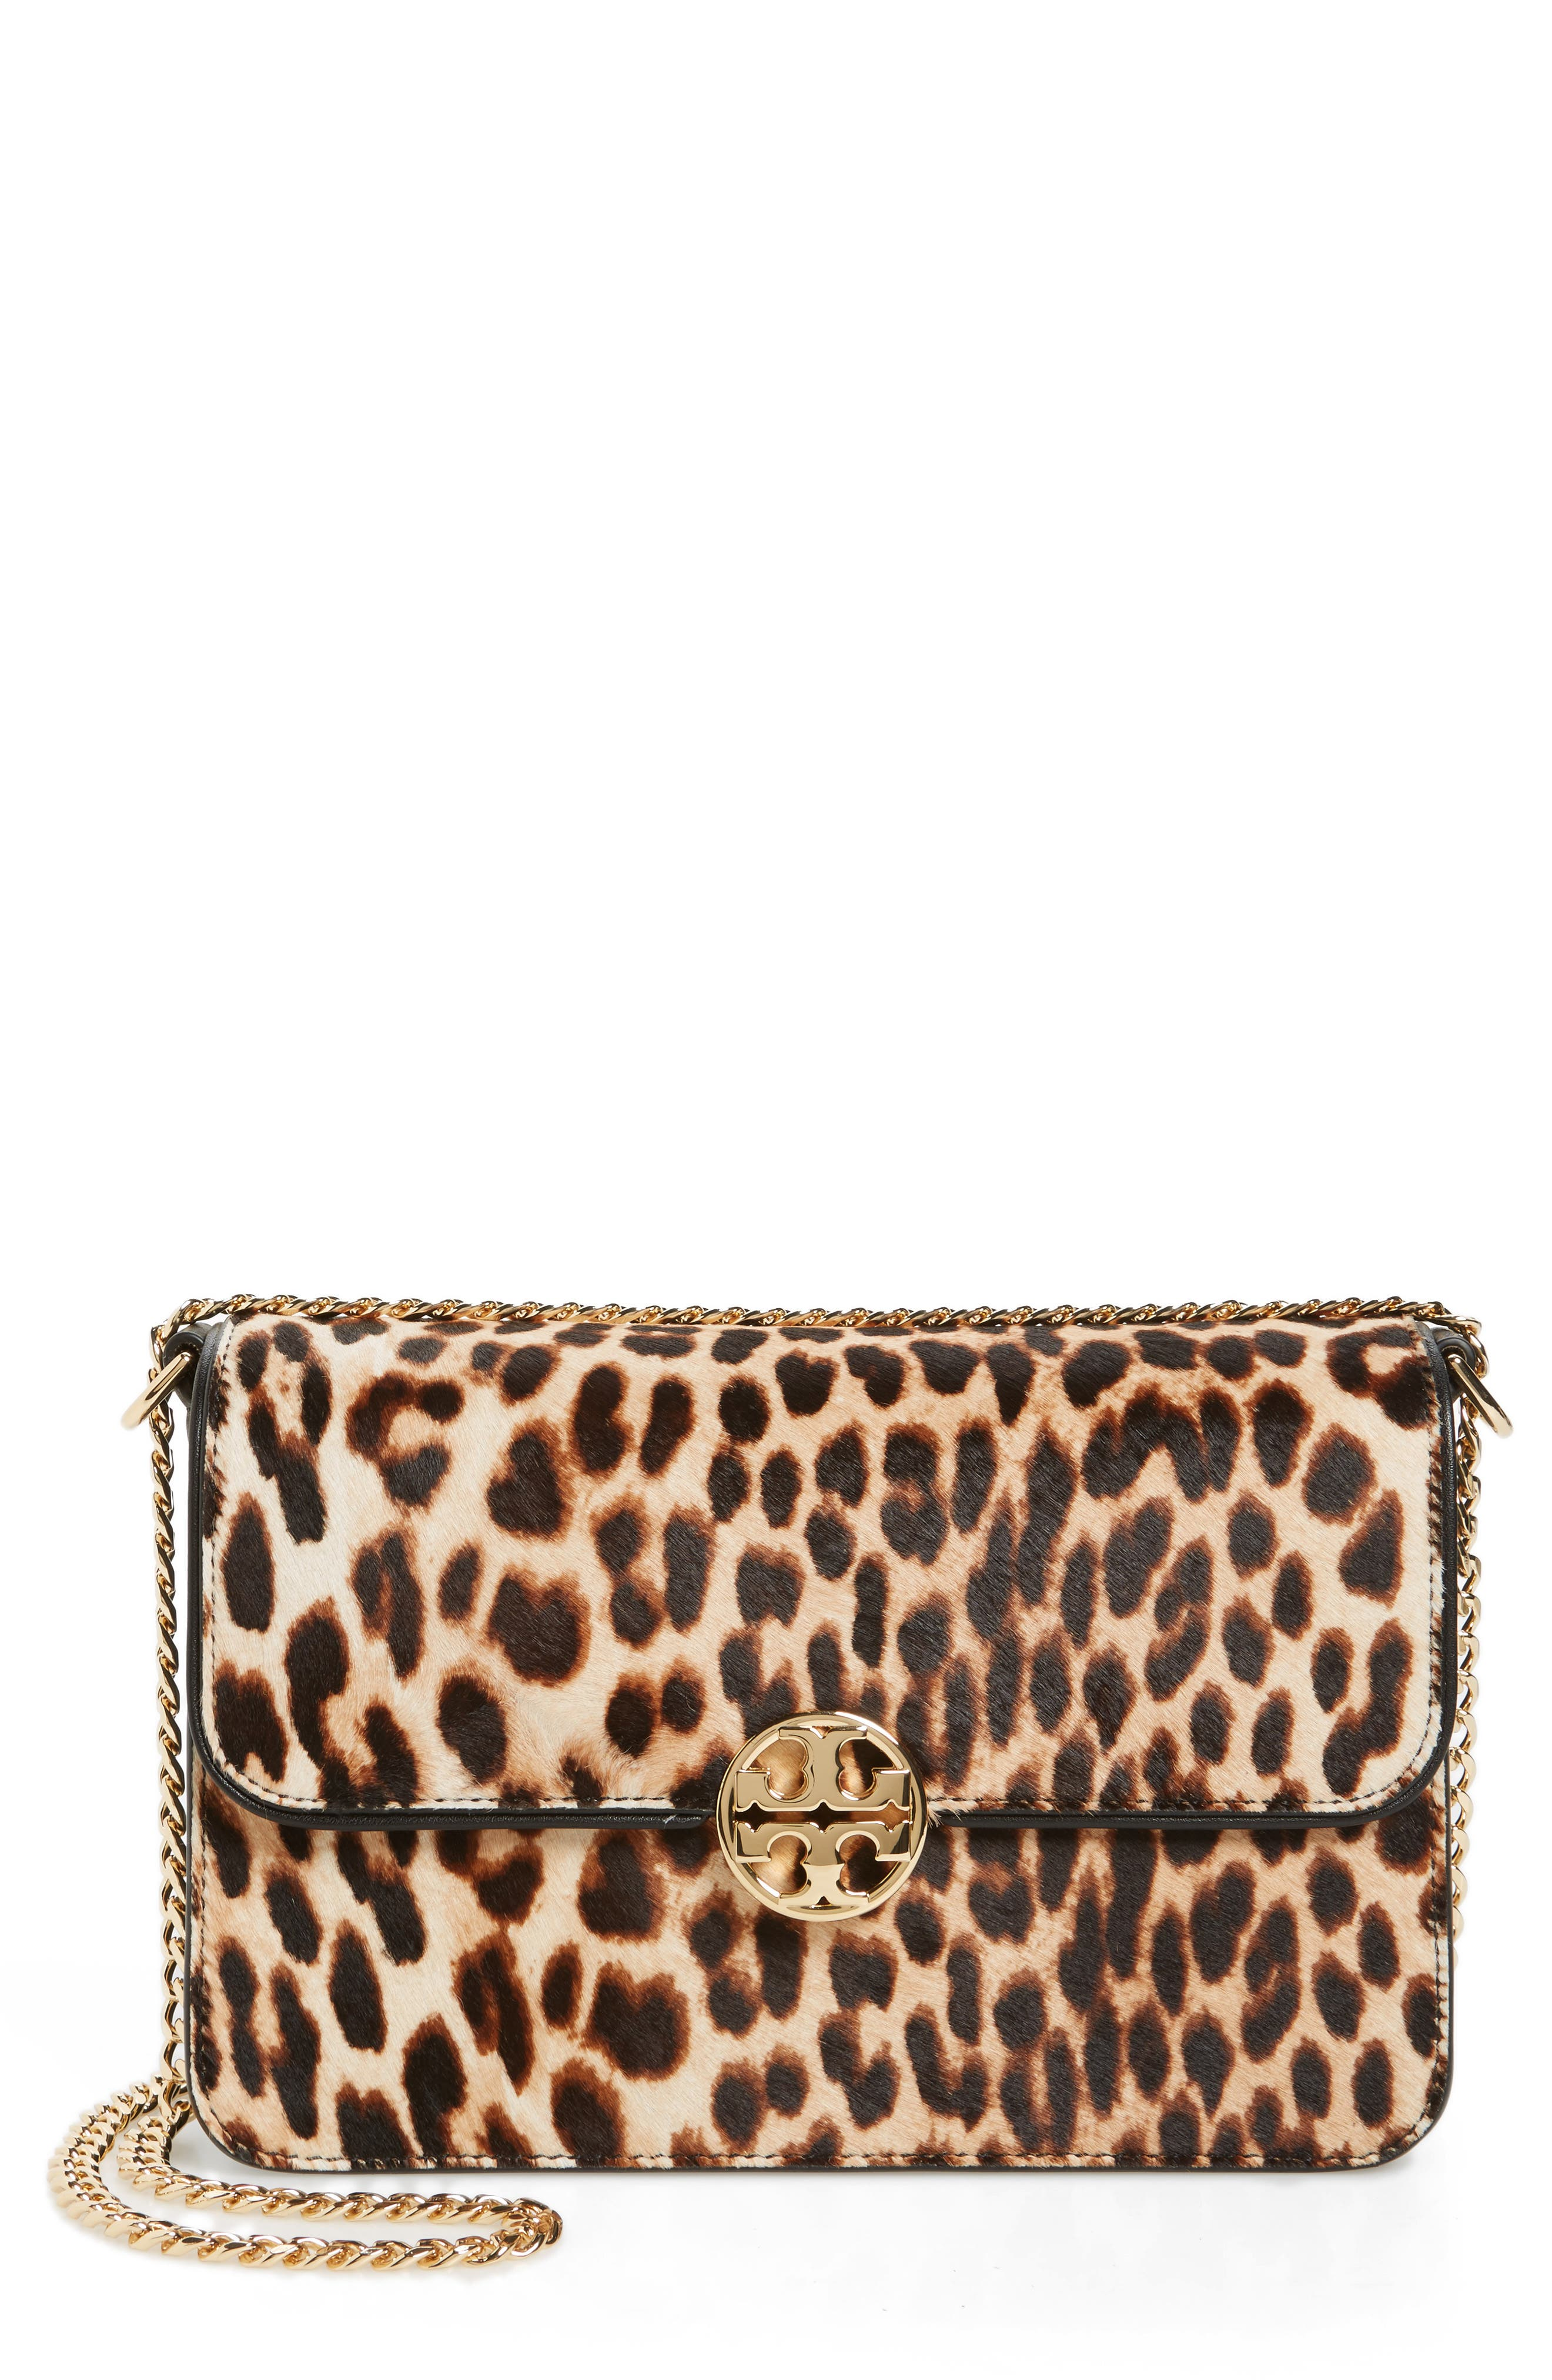 Main Image - Tory Burch Chelsea Genuine Calf Hair Shoulder Bag